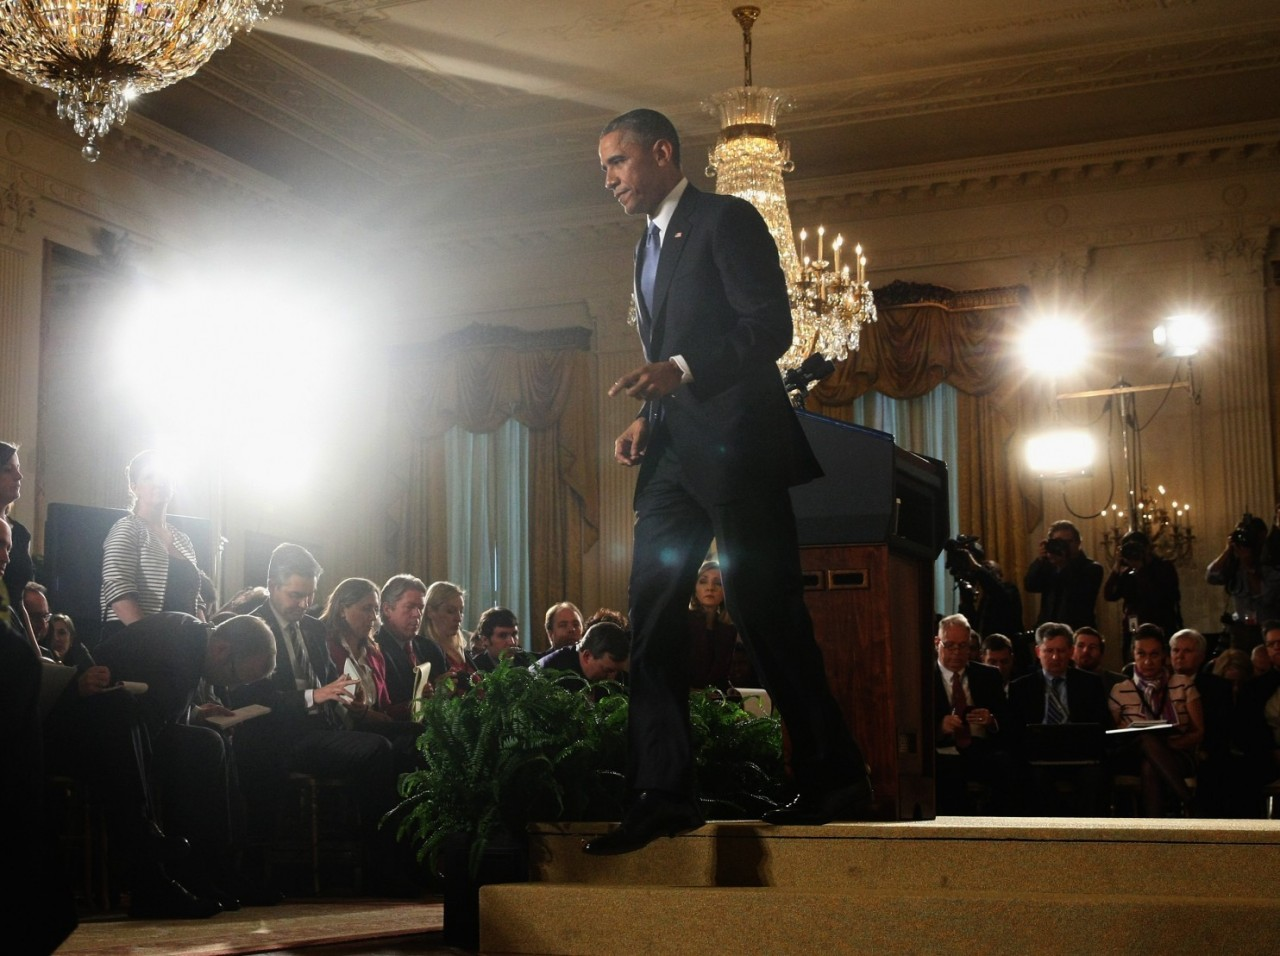 After midterms, Obama resolute about his final years as president